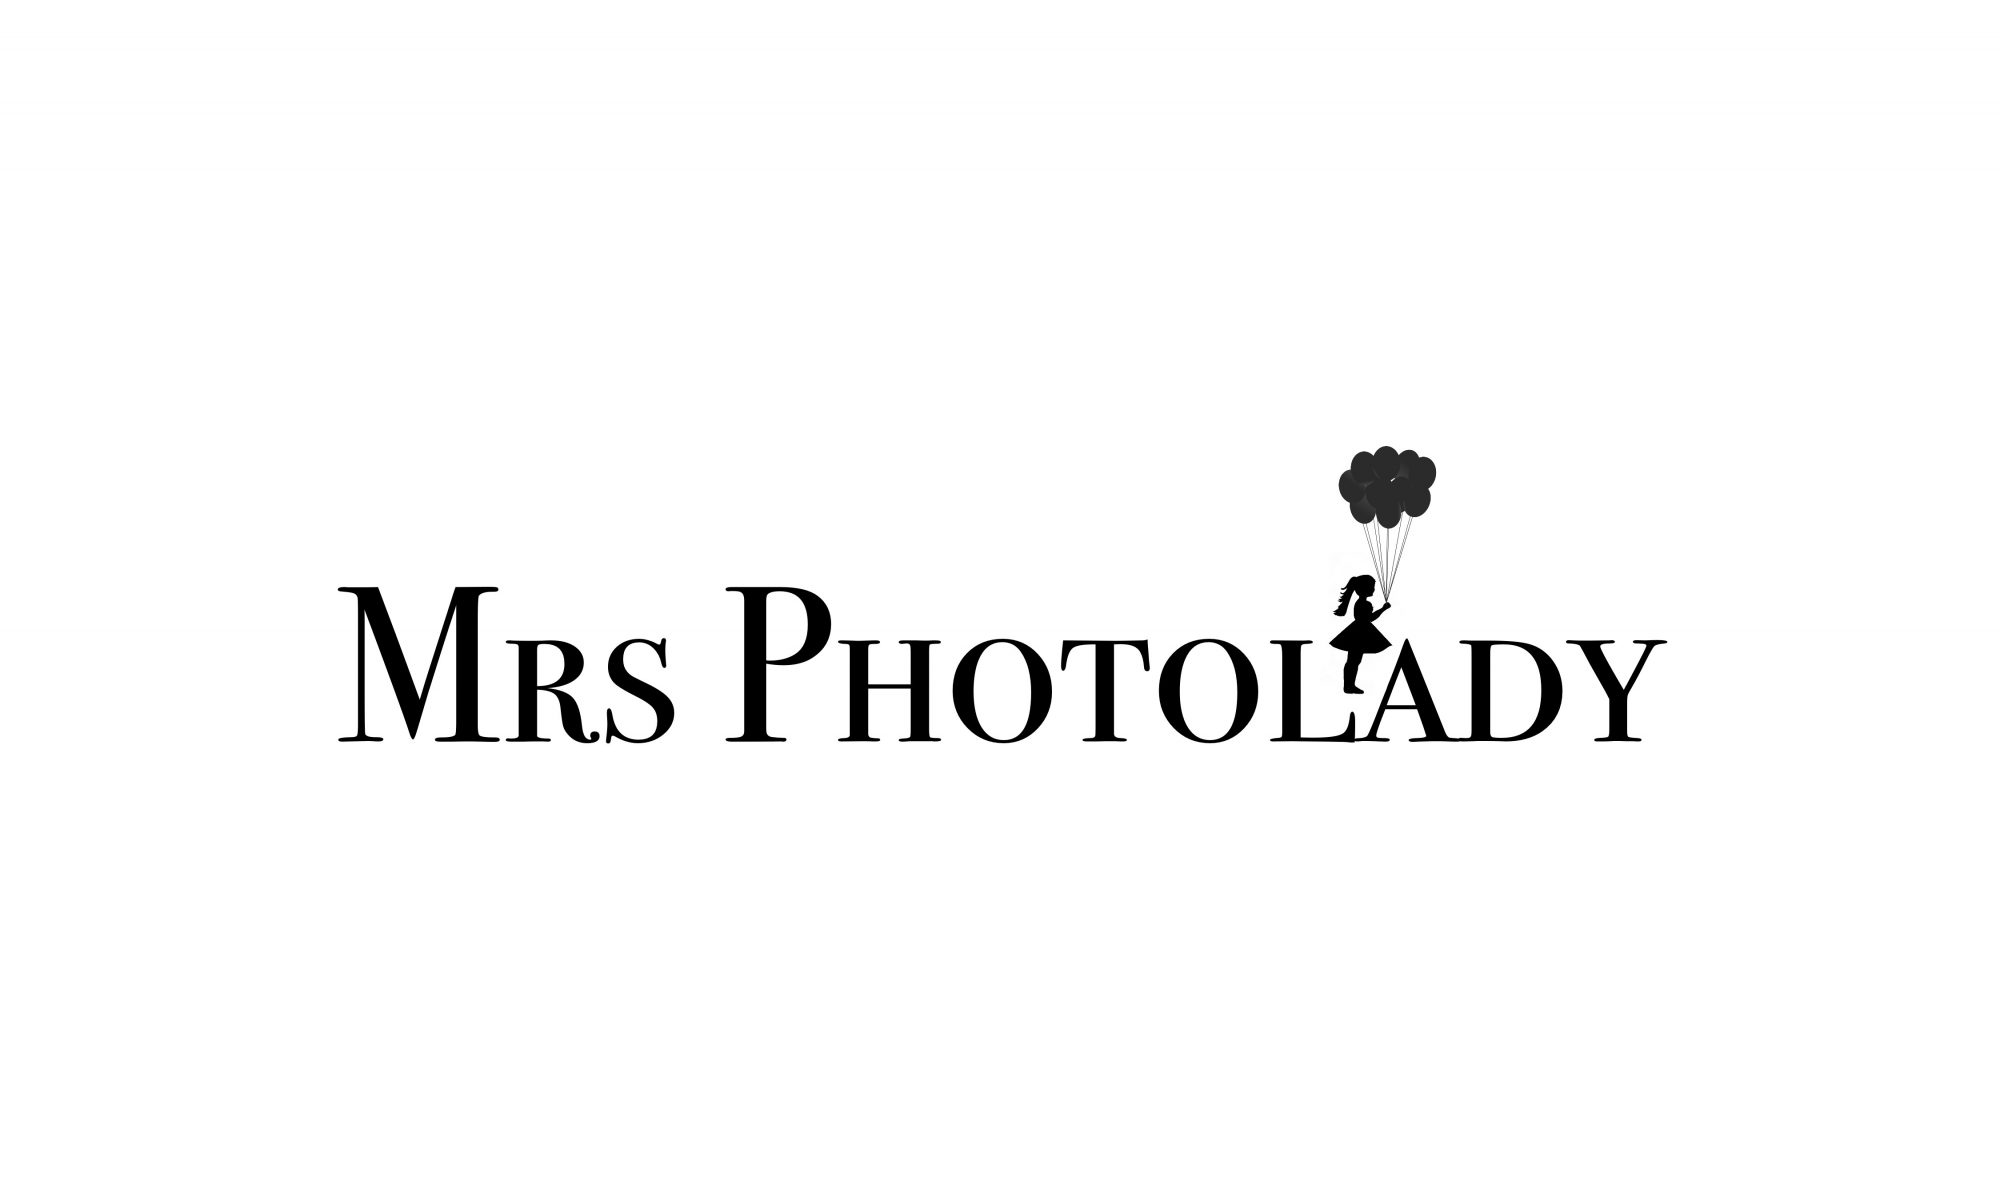 Mrs PhotoLady